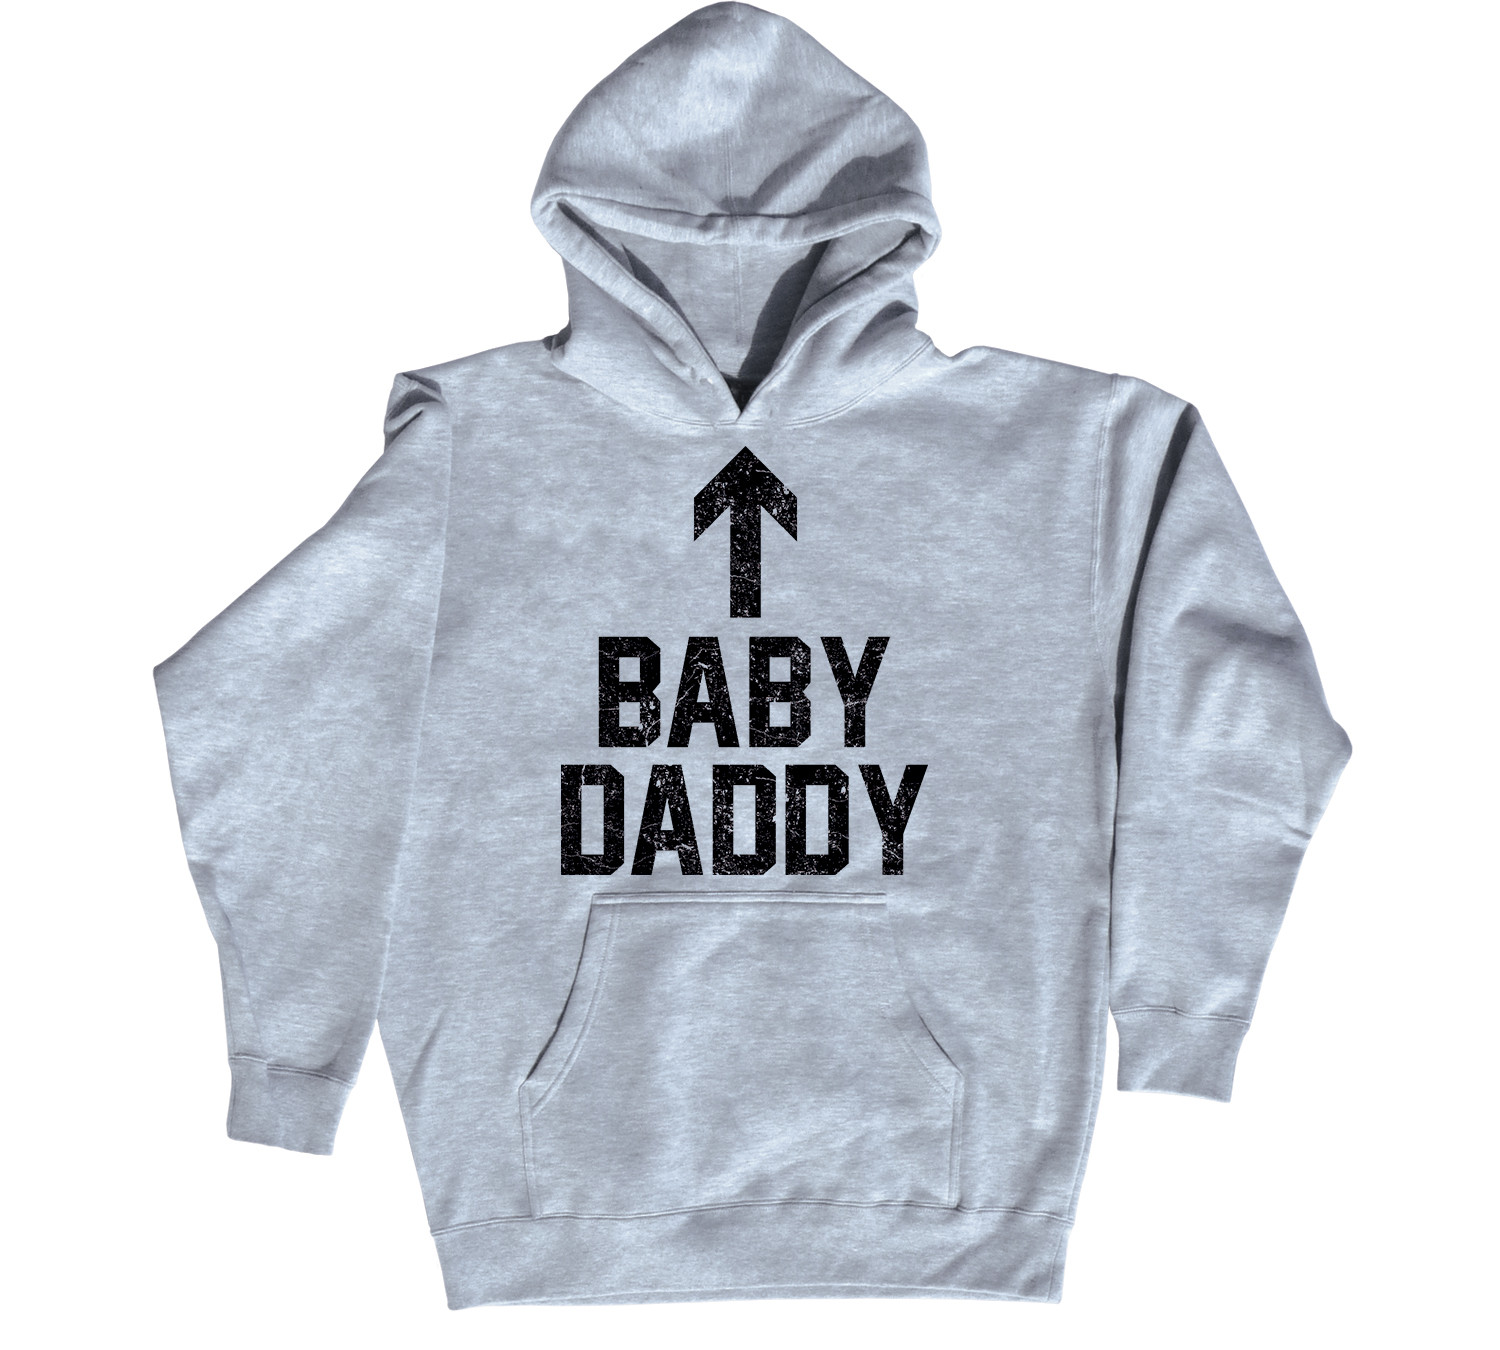 Father'S Day Dinner  Baby Daddy Funny New Dad Father s Day Paternity Maternity